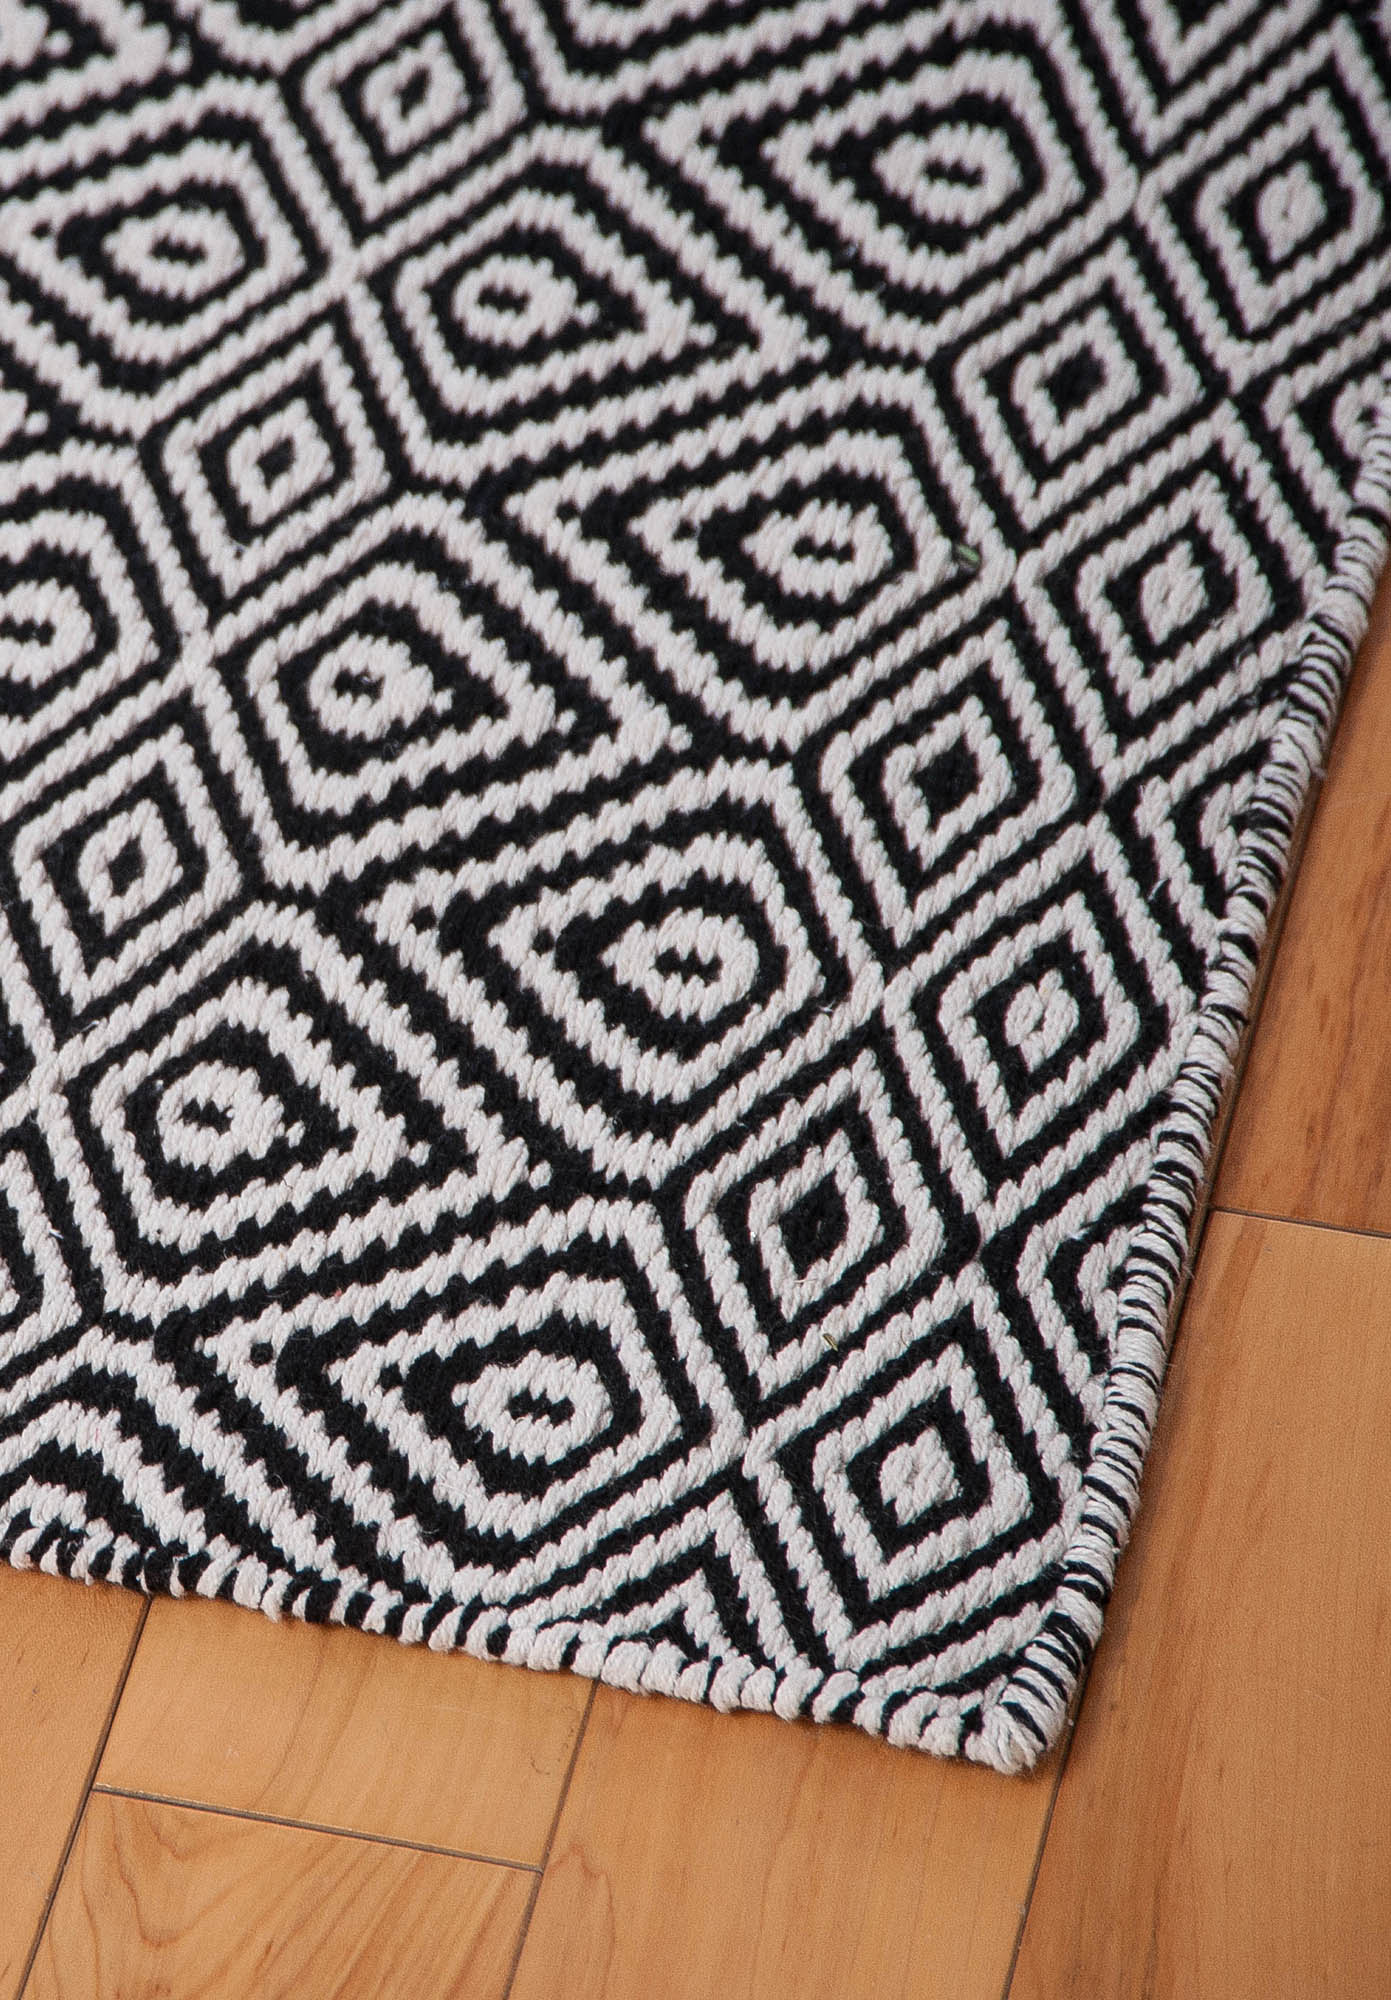 black and white rugs wild diamonds eco cotton rug - black/white. wild diamonds eco cotton rug - MKUAQIZ